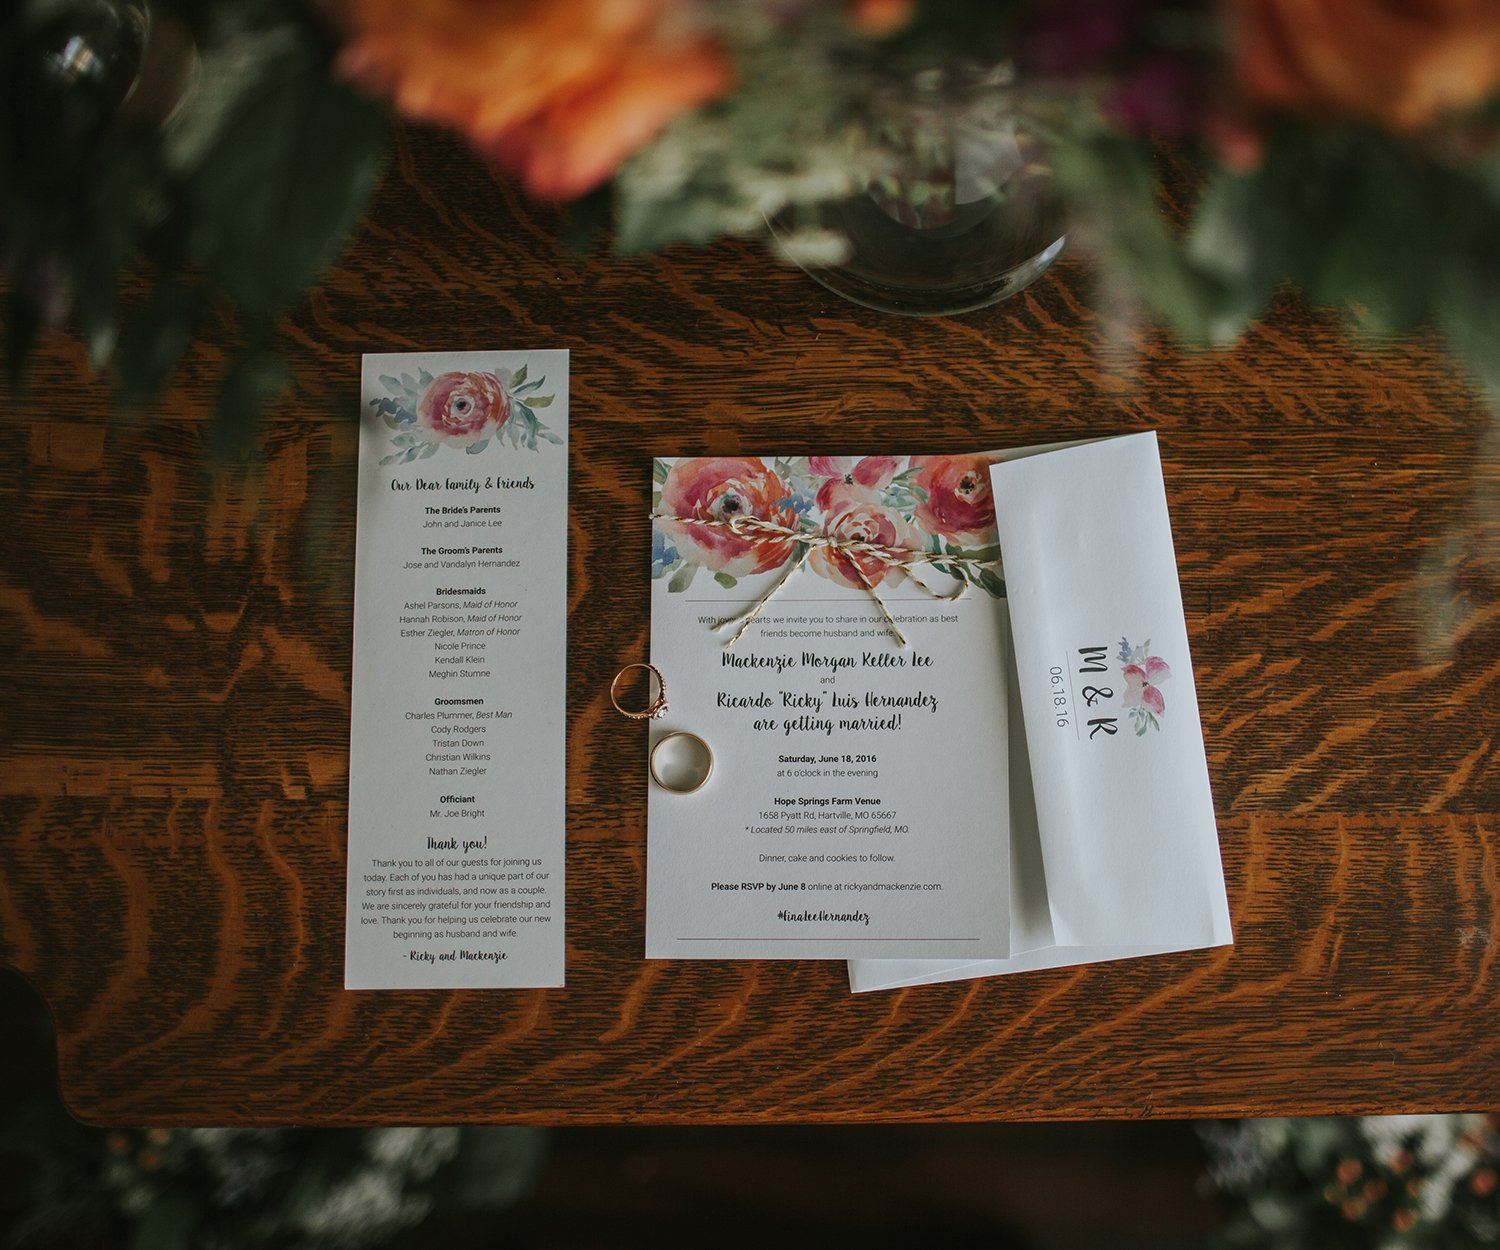 Mackenzie Lee & Ricky Hernandez wedding invitations